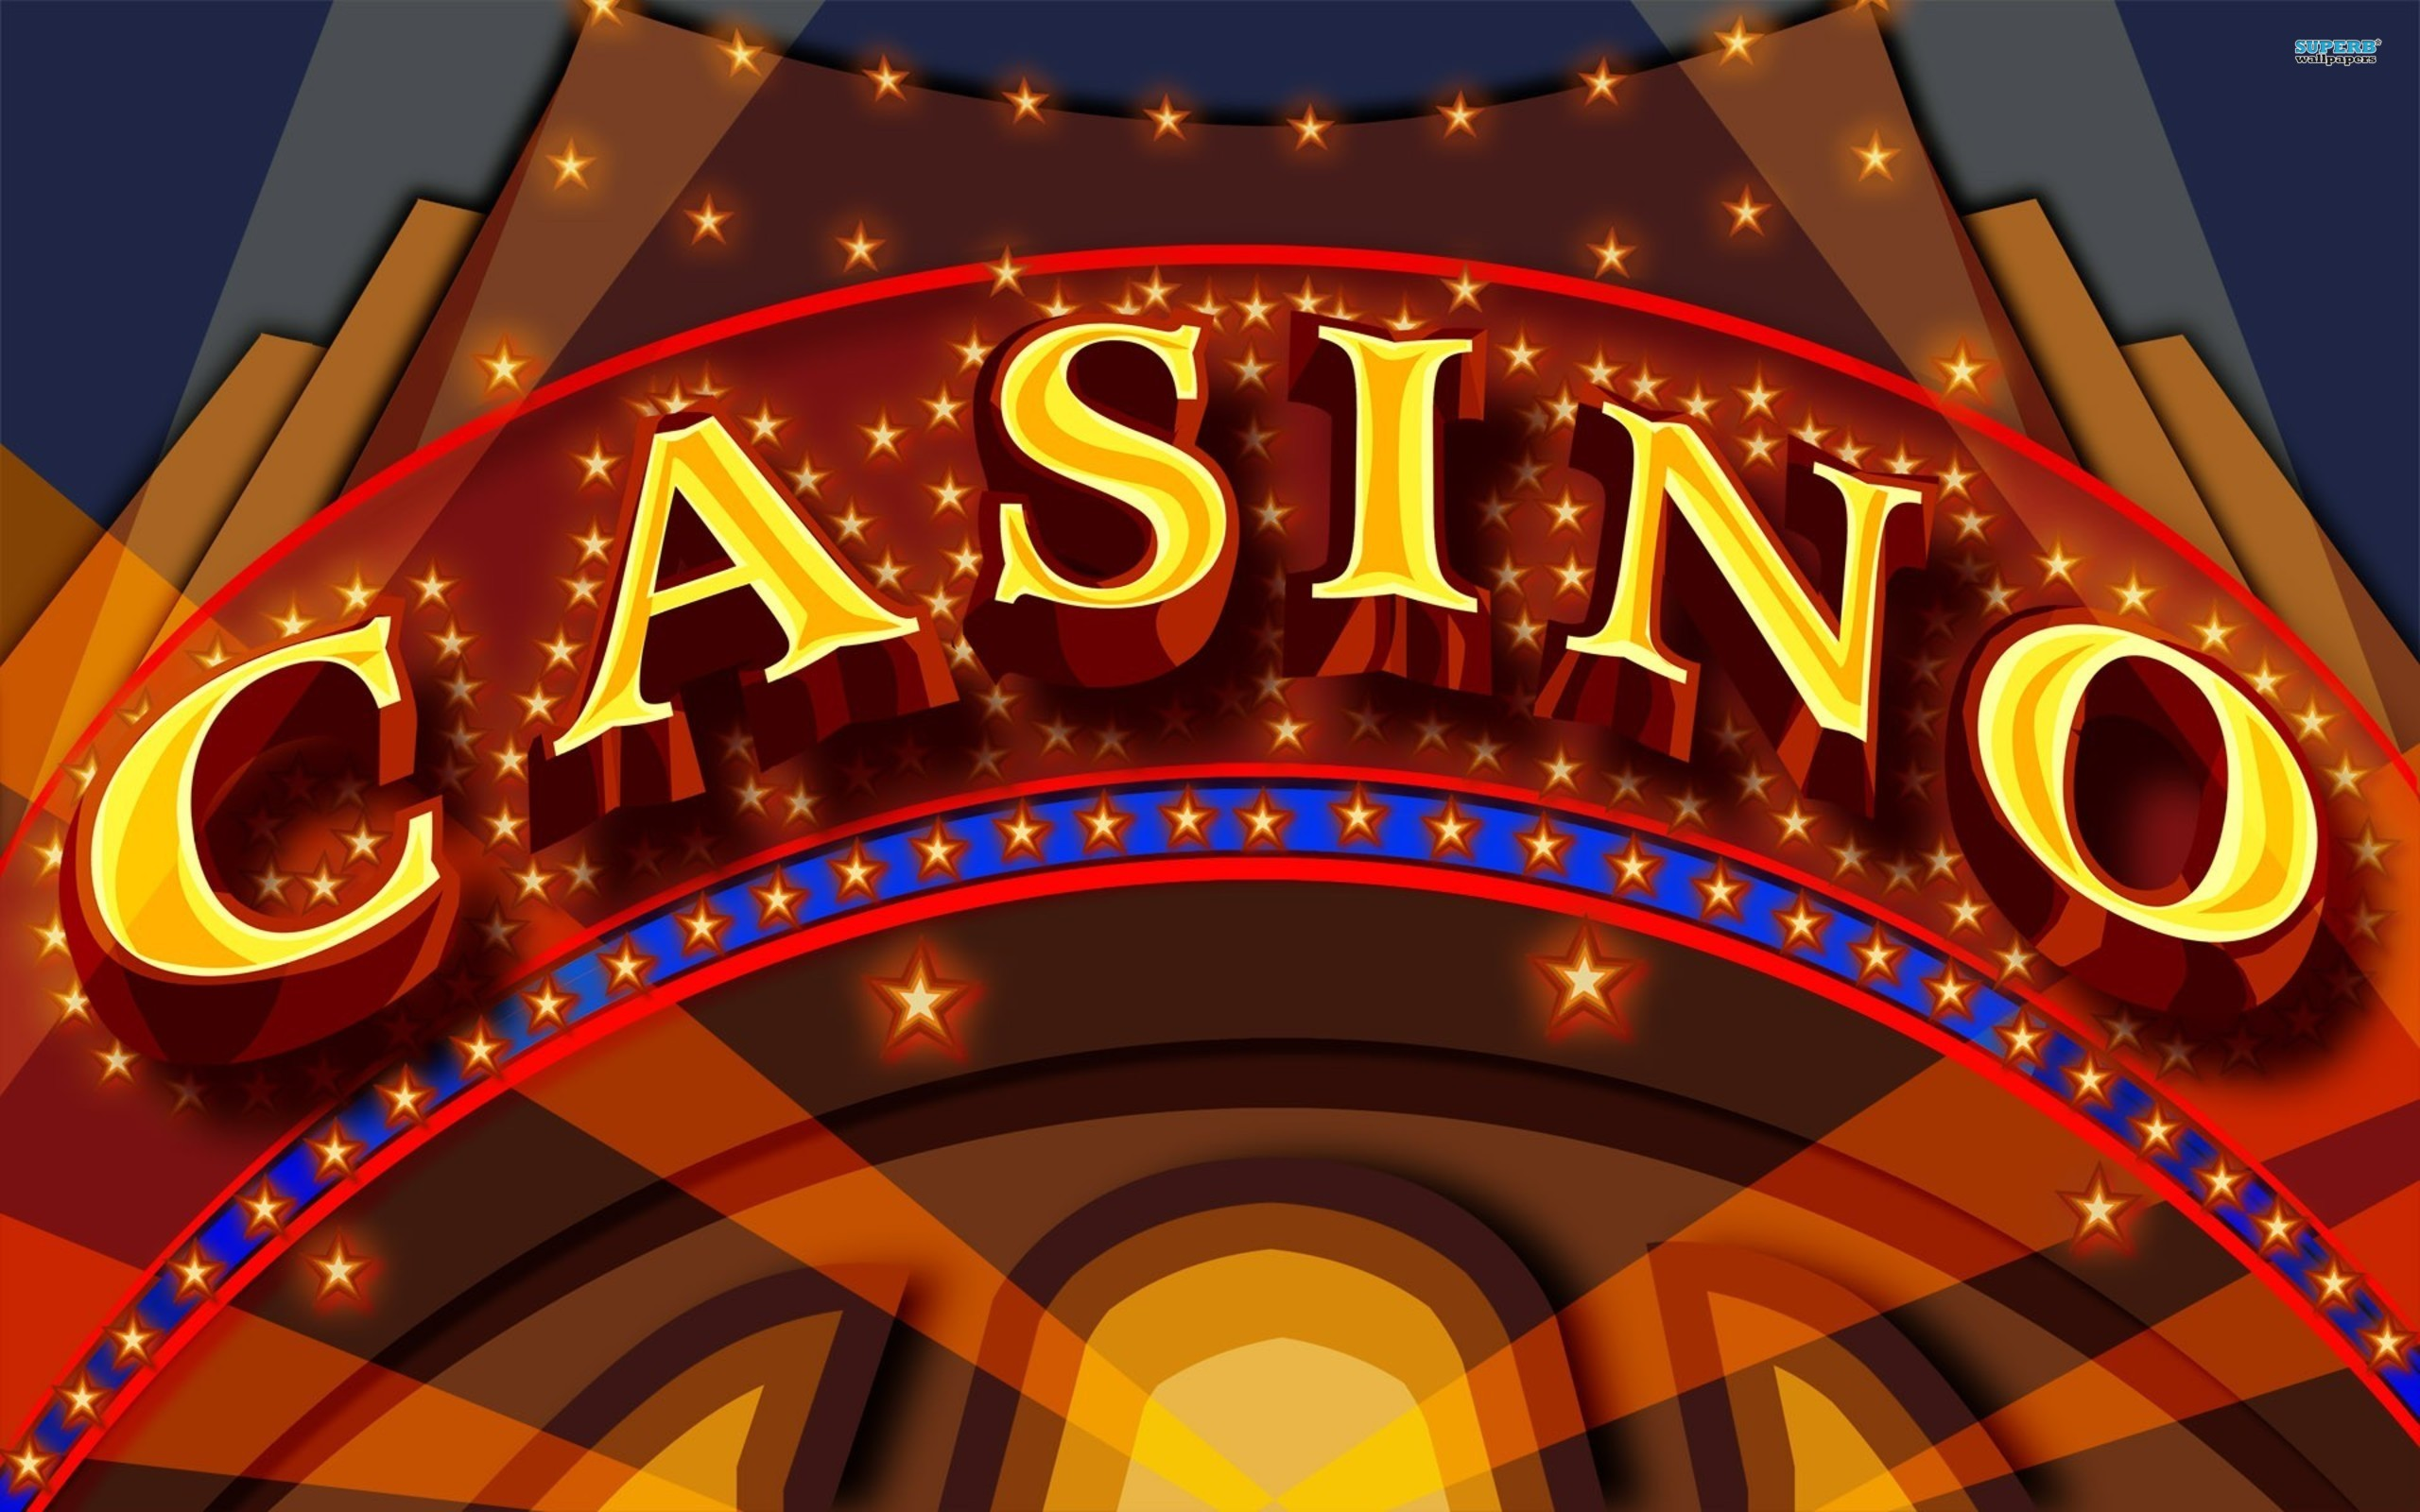 Casino Backgrounds, Compatible - PC, Mobile, Gadgets- 2560x1600 px